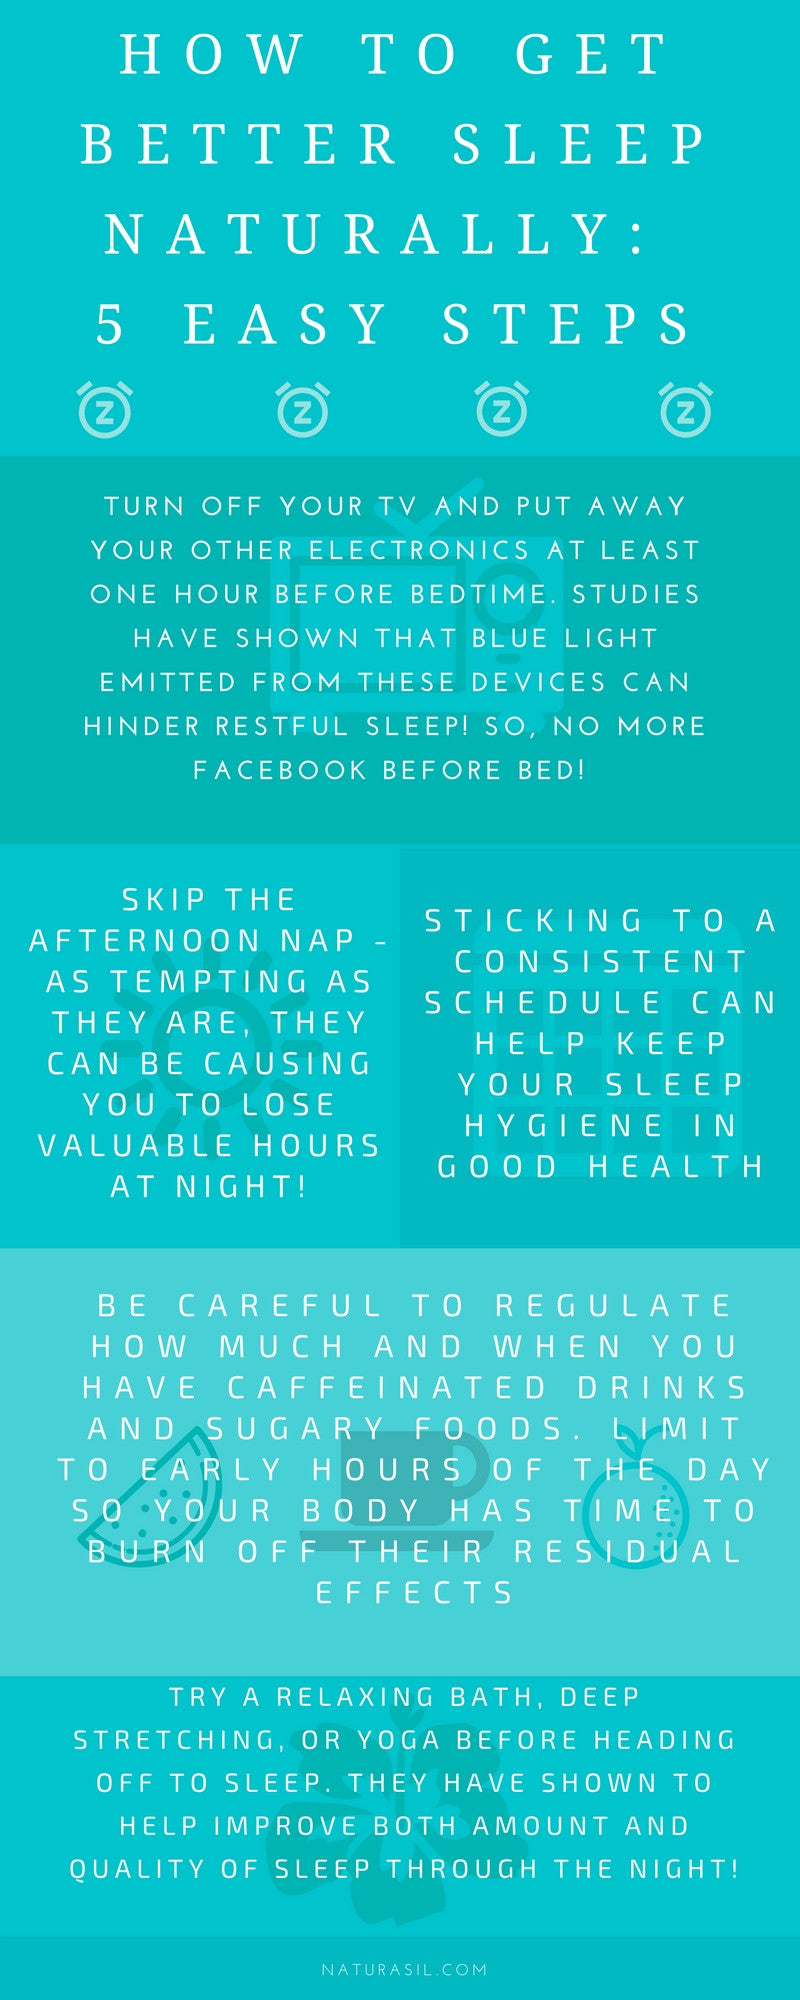 Wishful Thinking: On The Hunt For Better Sleep